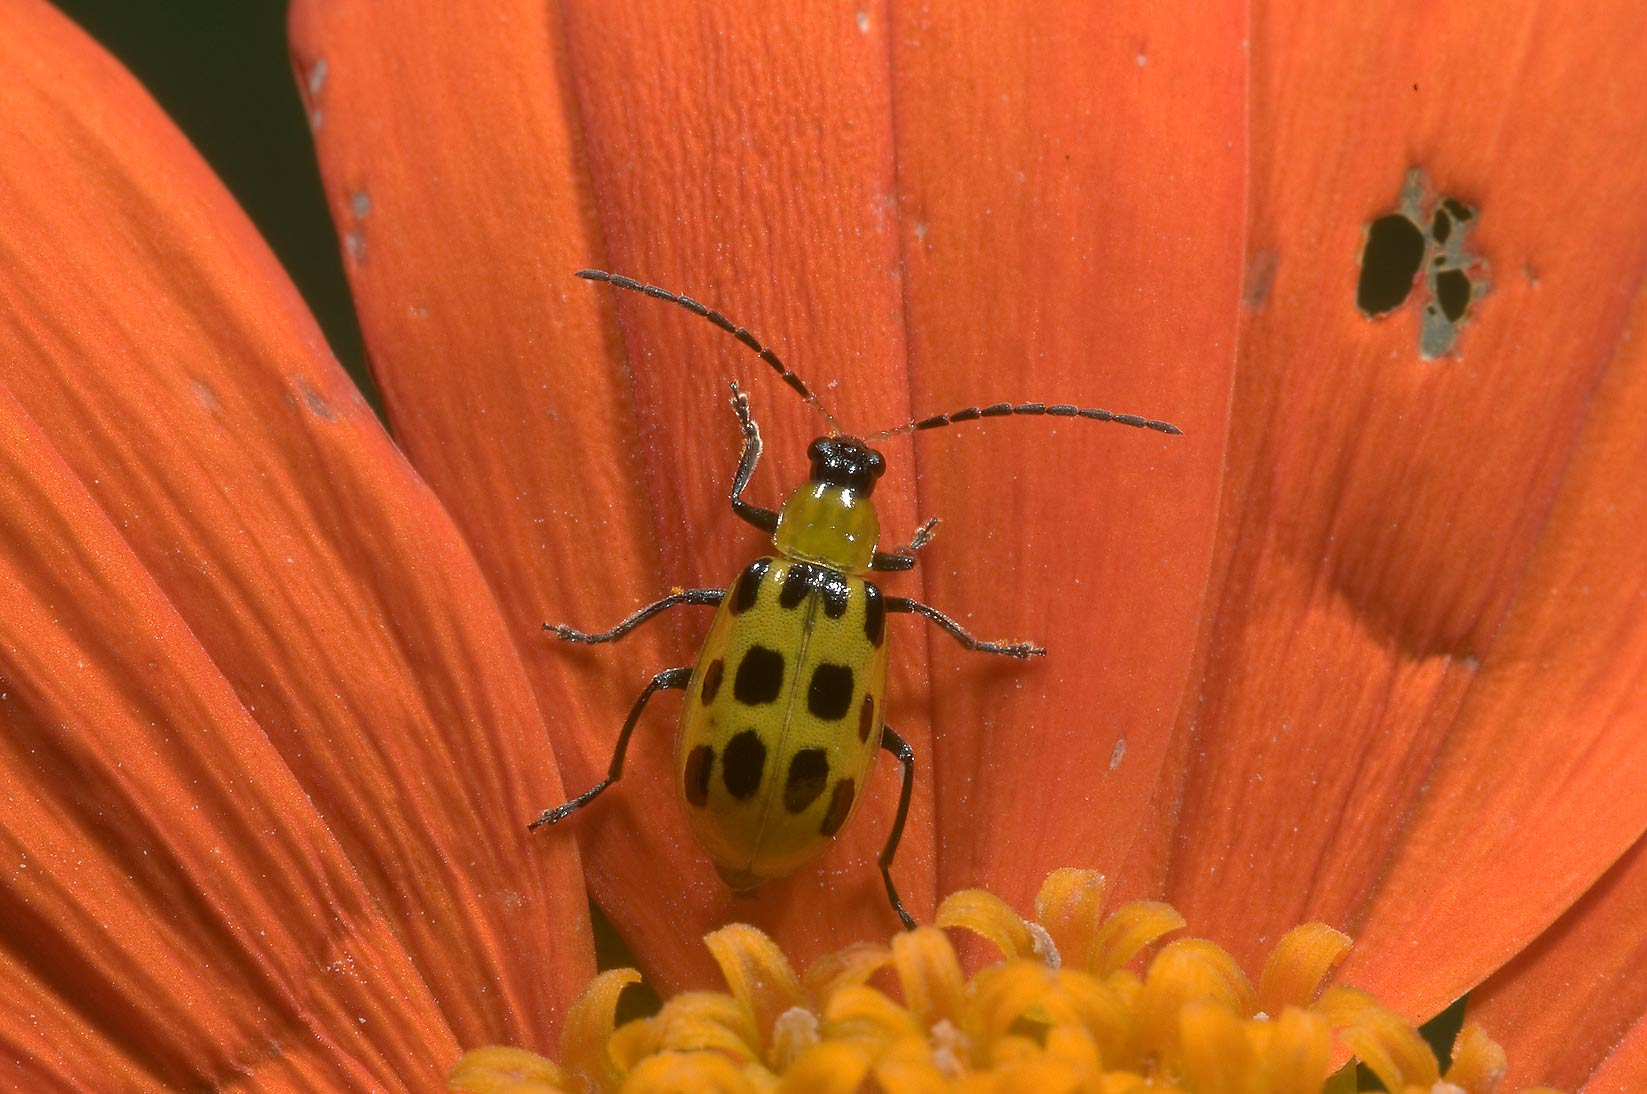 Spotted cucumber beetles (Diabrotica...M University. College Station, Texas